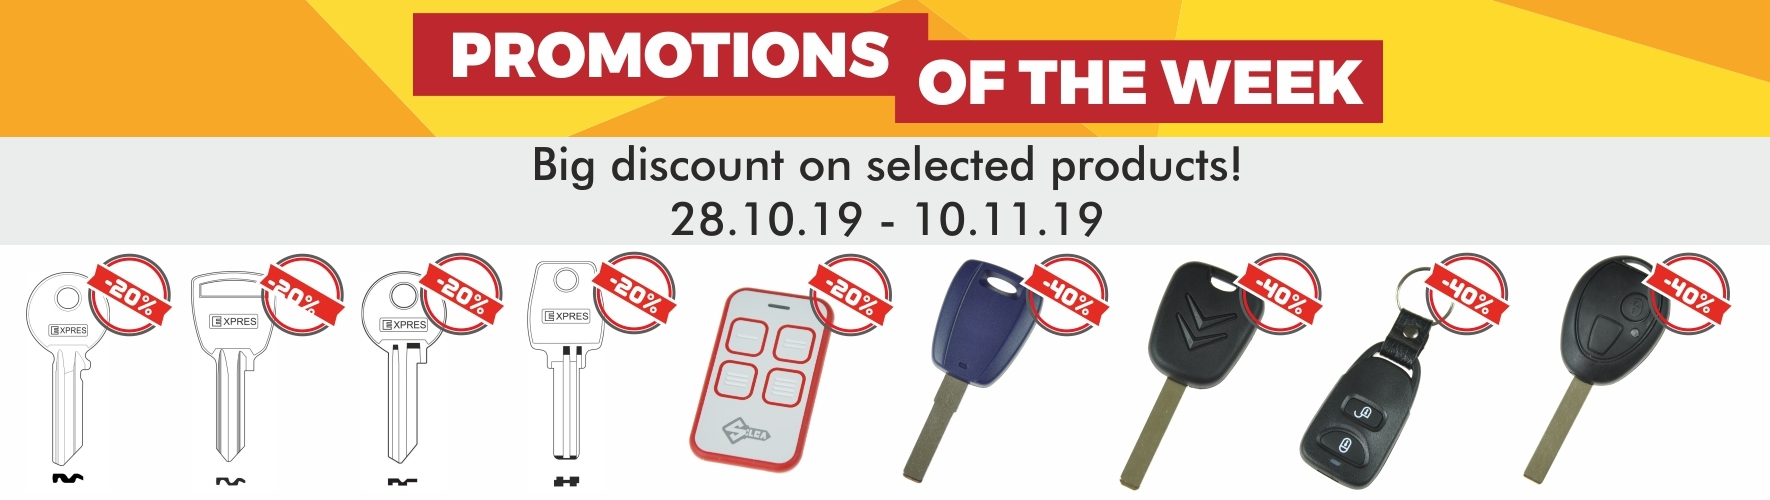 Promotions of the week